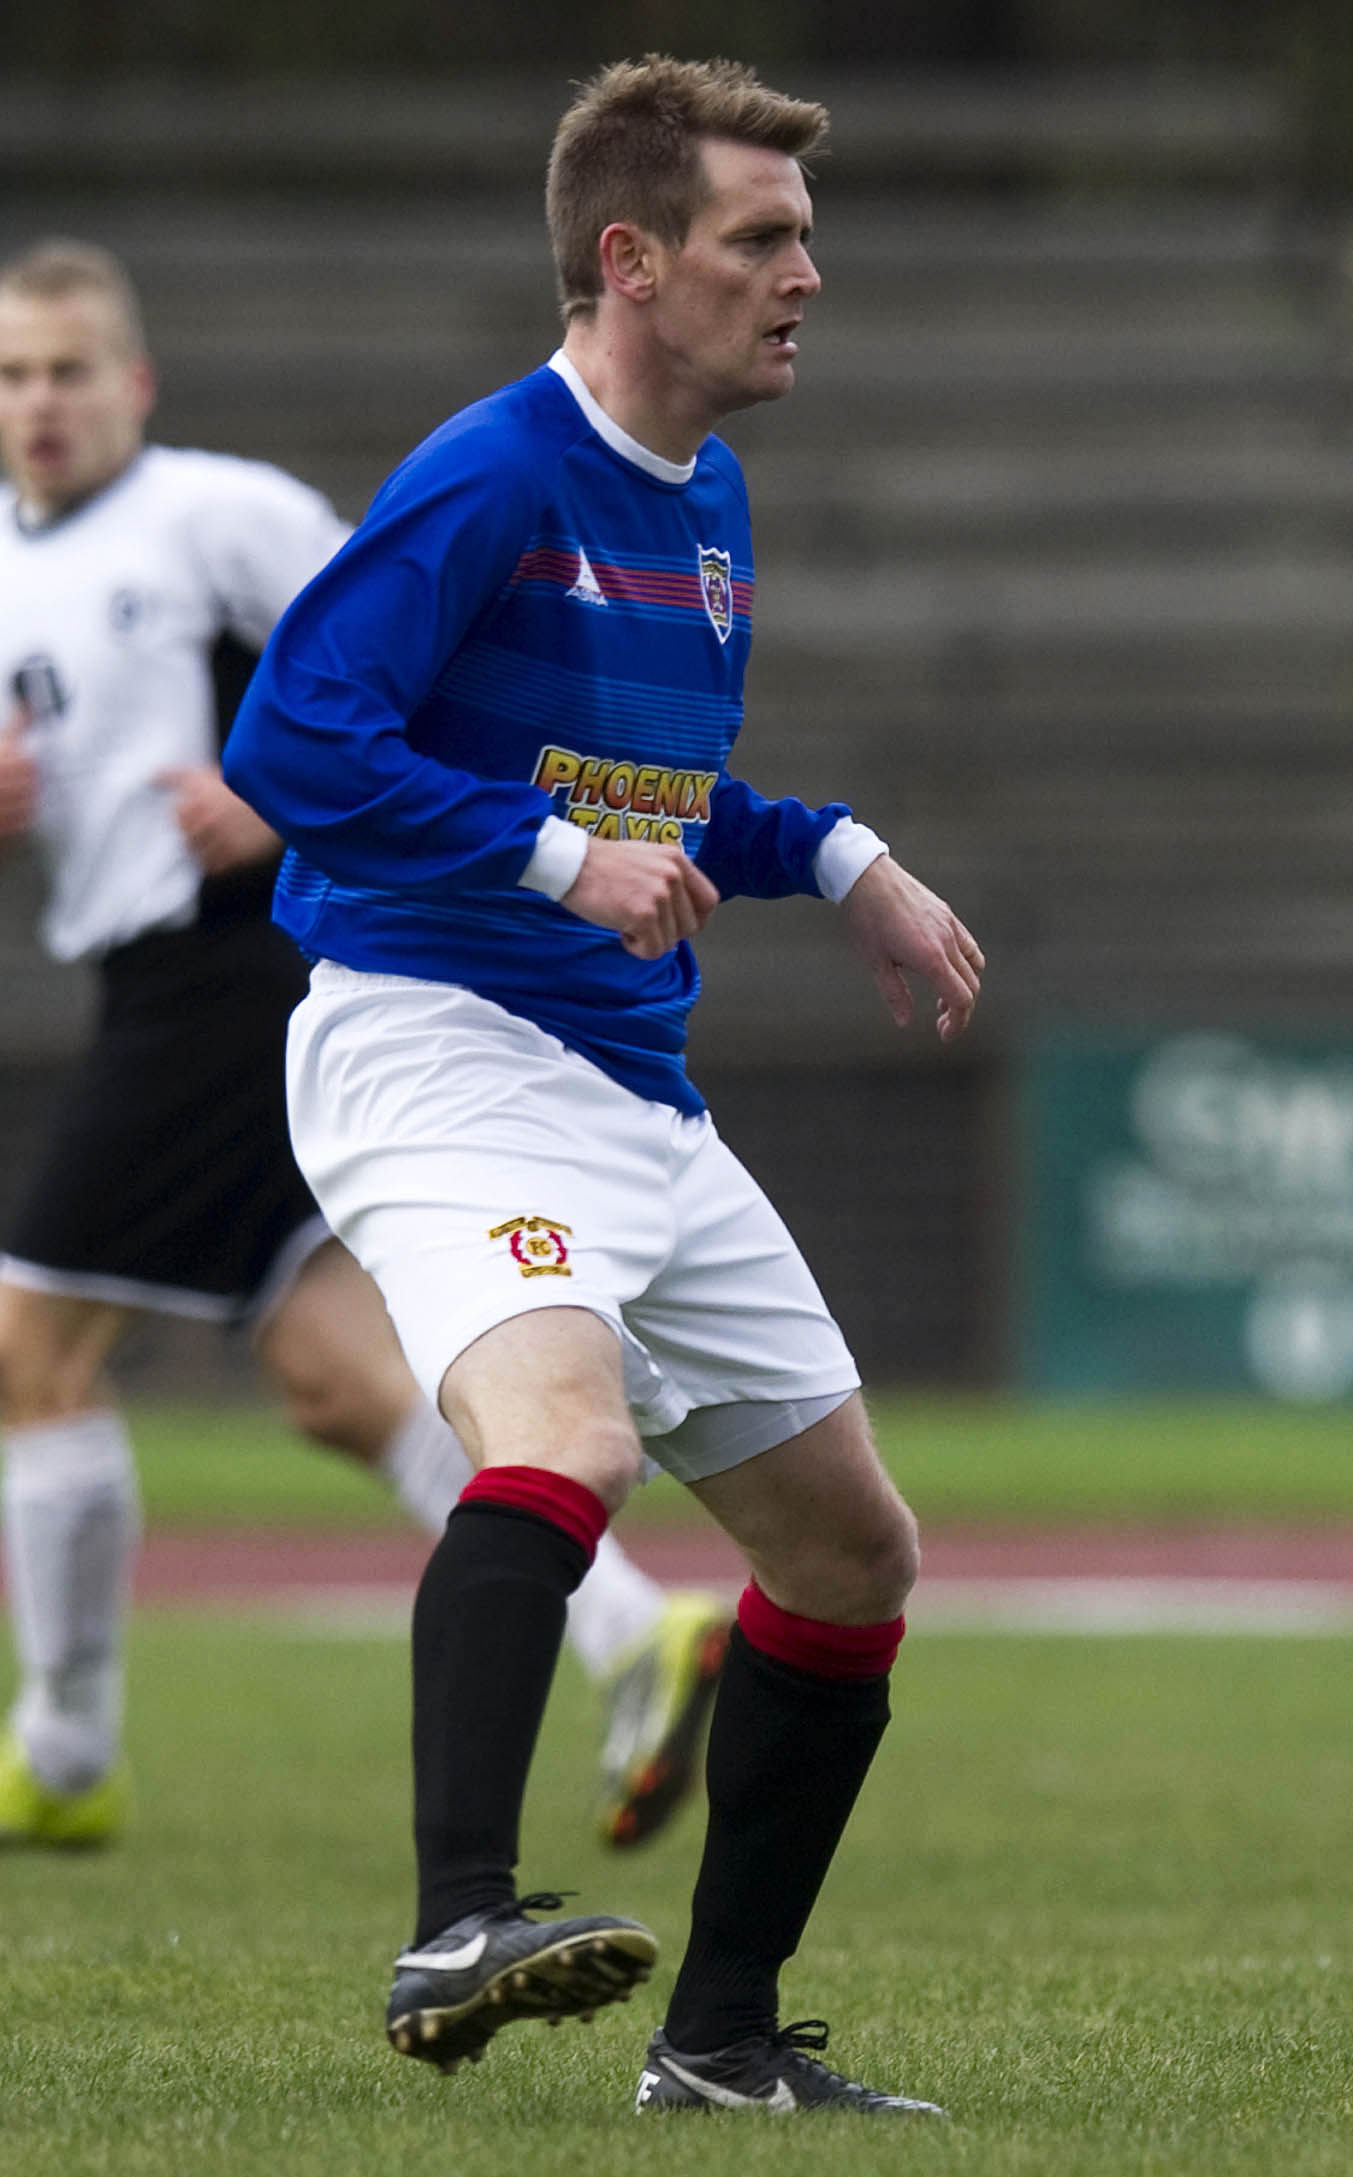 Chris Strain knows McGinty well from their days together at Irvine Meadow